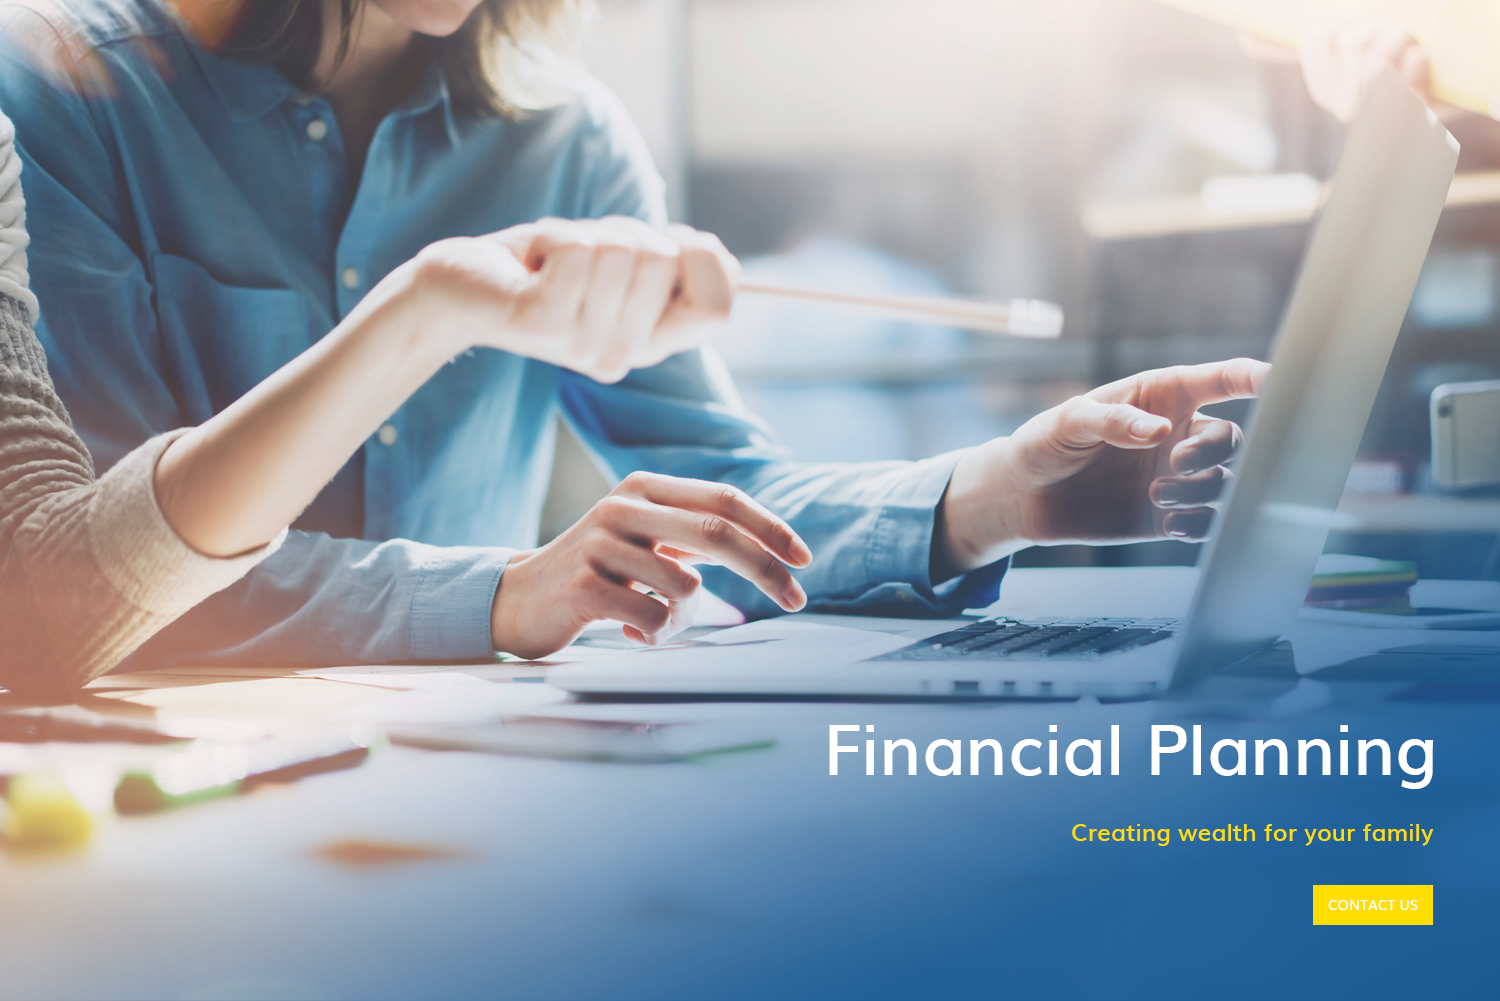 Gunn accounting providing you with financial planning - creating wealth for you and your family